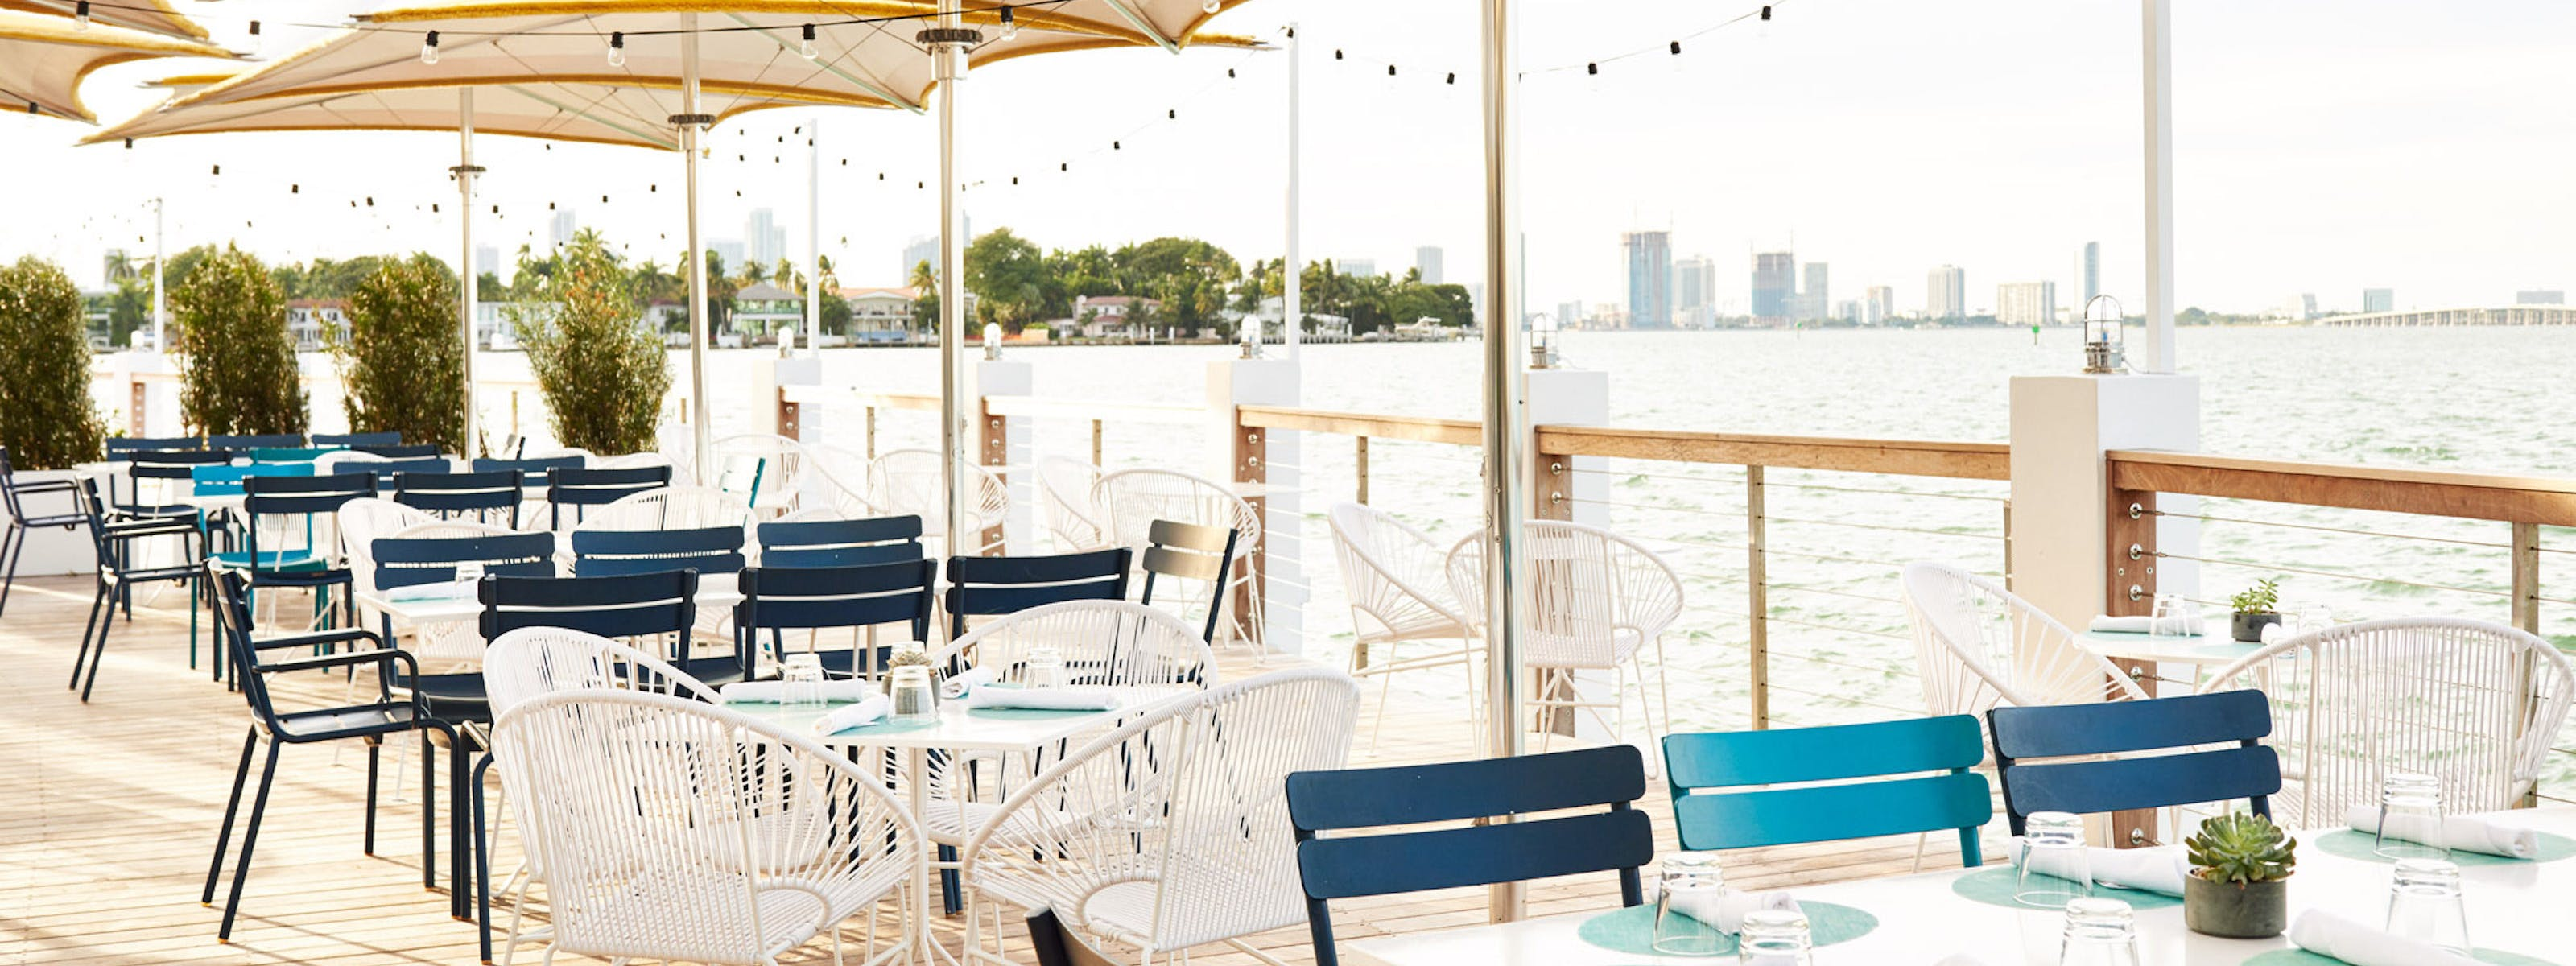 The Best Miami Waterfront Restaurants With Outdoor Seating - Miami - The Infatuation